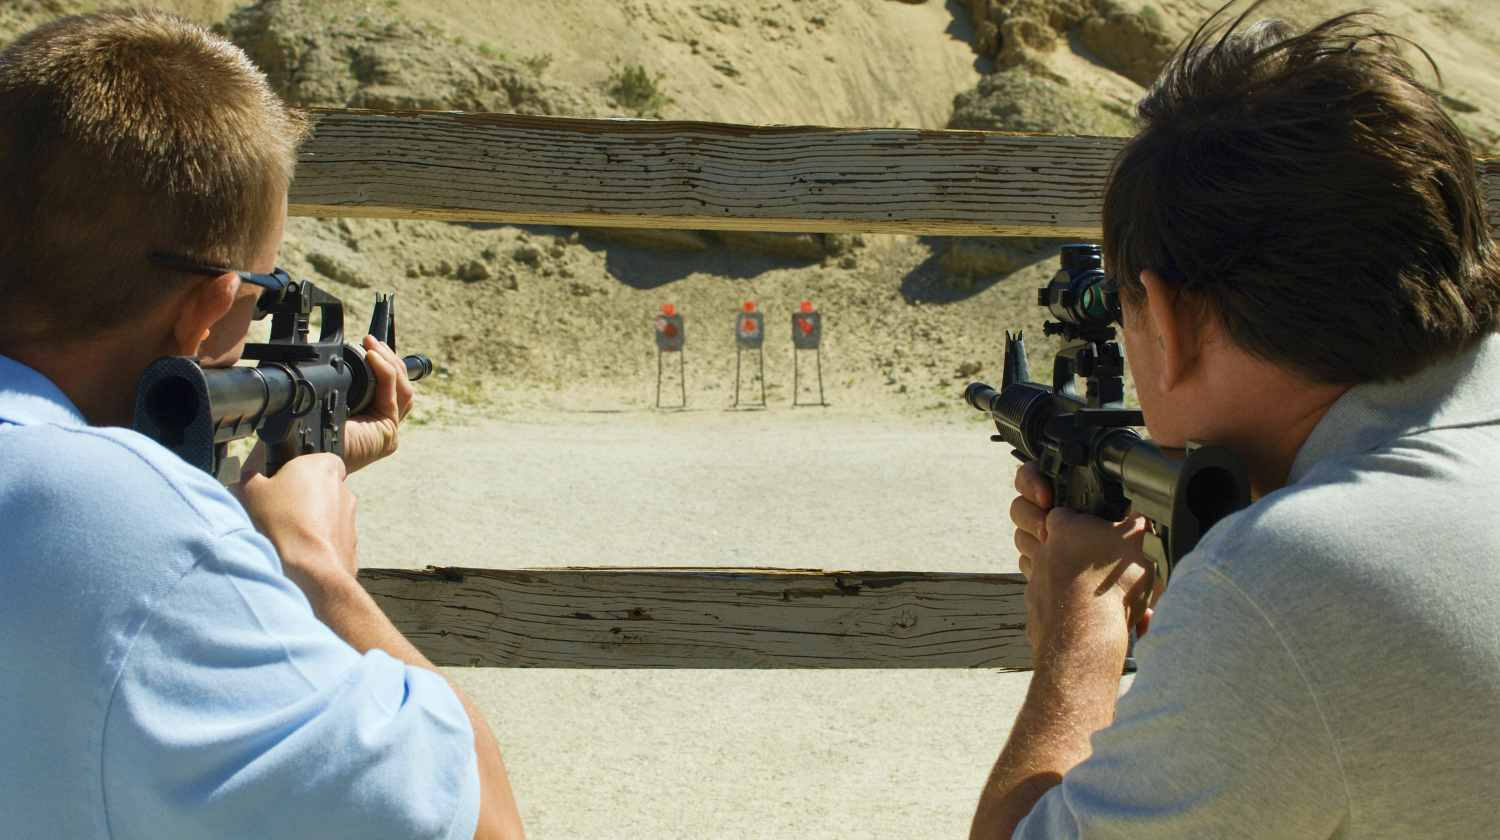 Feature | Men aiming rifles at firing range | Rifle Shooting Tips & Techniques | Surprising Things New Rifle Shooters Need to Know